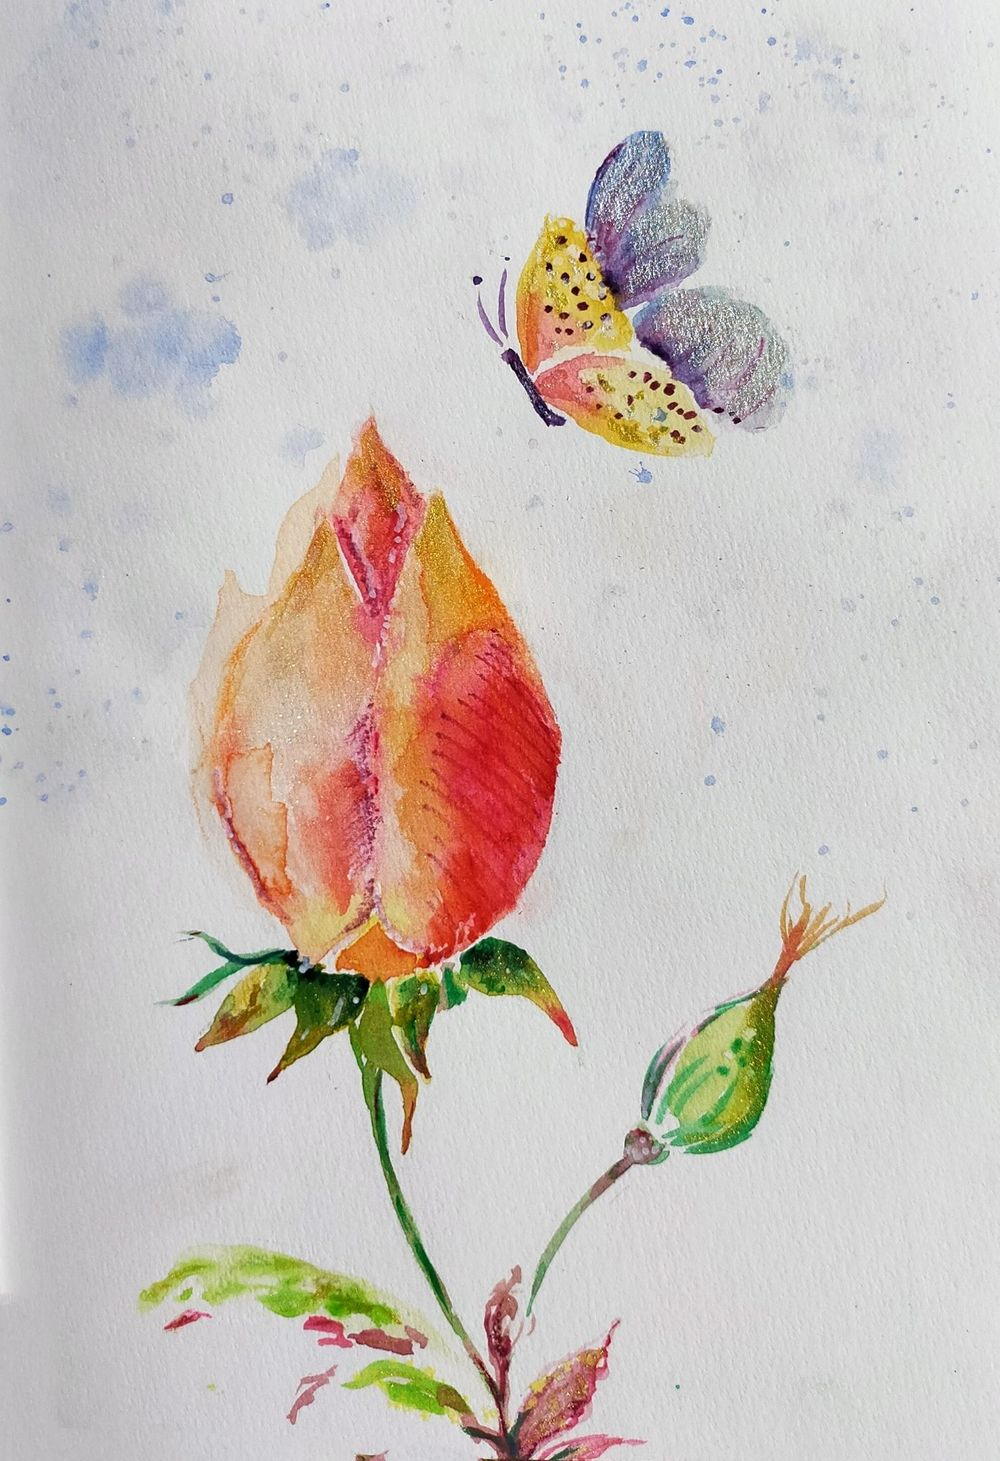 Watercolour special effects - image 5 - student project